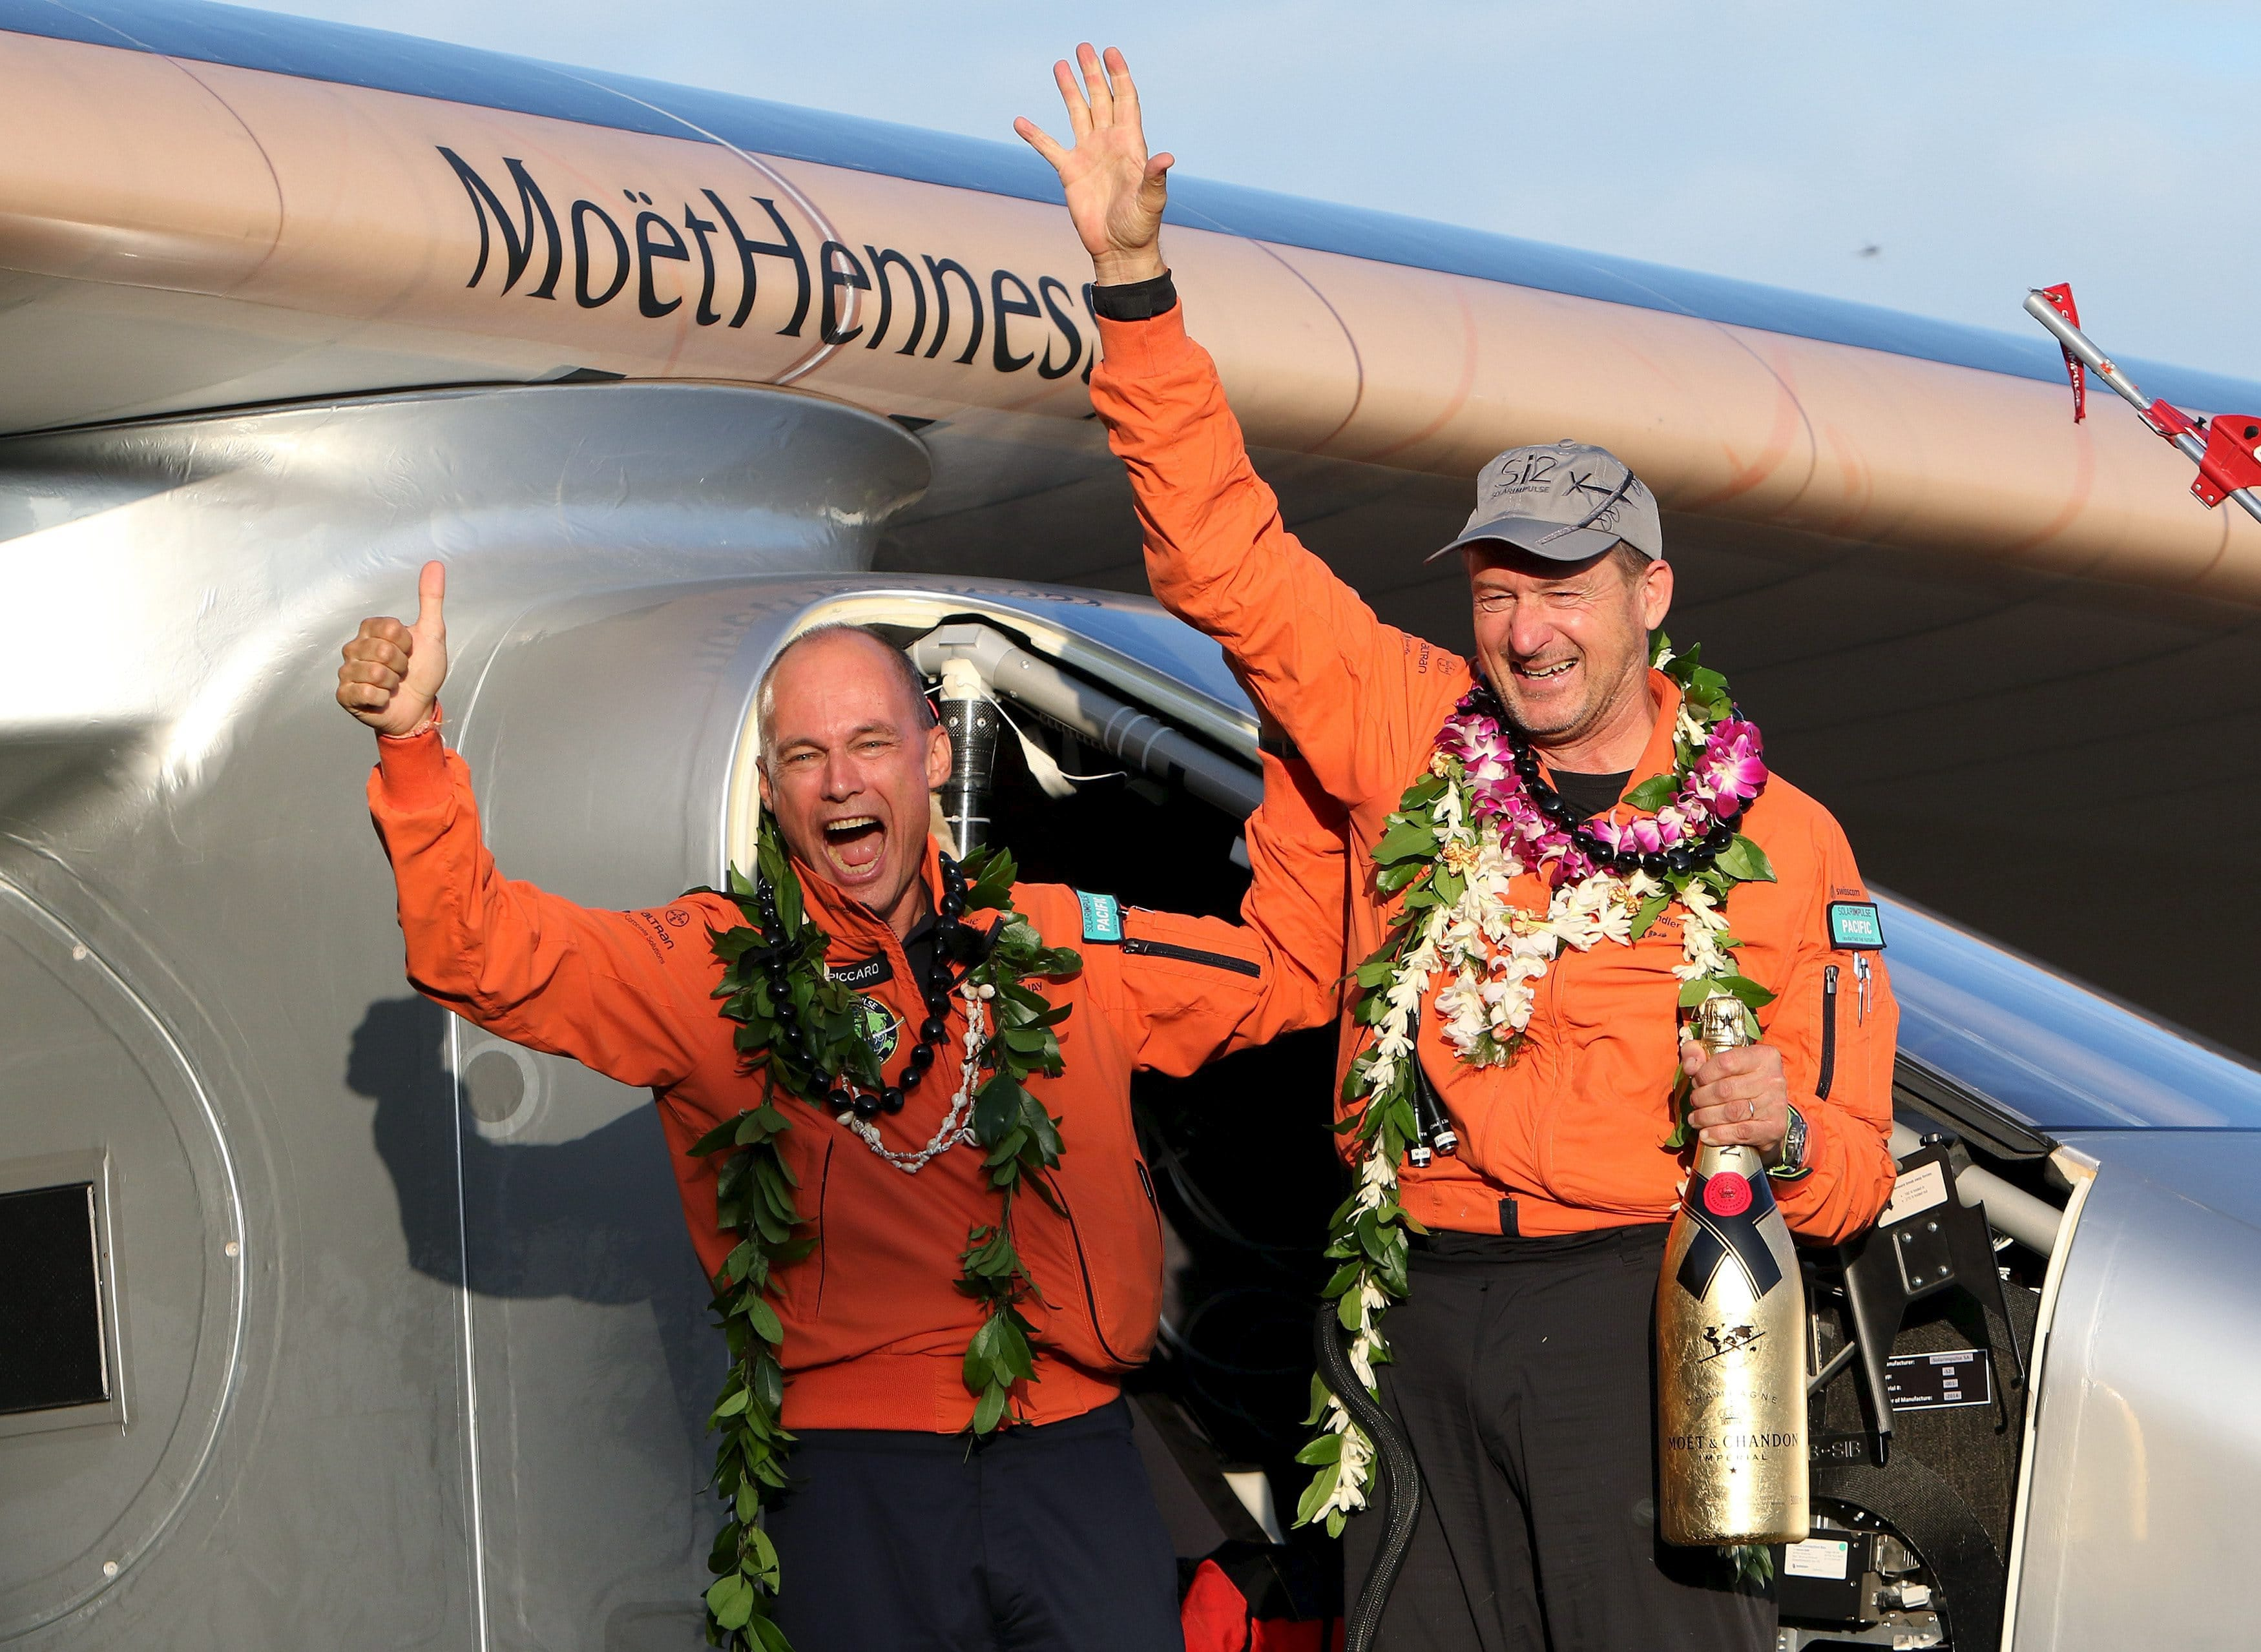 Bertrand Piccard (L) celebrates with Andre Borschberg after the Solar Impulse 2 airplane, piloted by Borschberg, landed at Kalaeloa airport after flying non-stop from Nagoya, Japan, in Kapolei, Hawaii, July 3, 2015. The aircraft, powered only by the sun's energy and piloted alternatively by Swiss explorers Borschberg and Piccard, has broken a world record for the longest non-stop solo flight, the project team said on Thursday. REUTERS/Hugh Gentry TPX IMAGES OF THE DAY